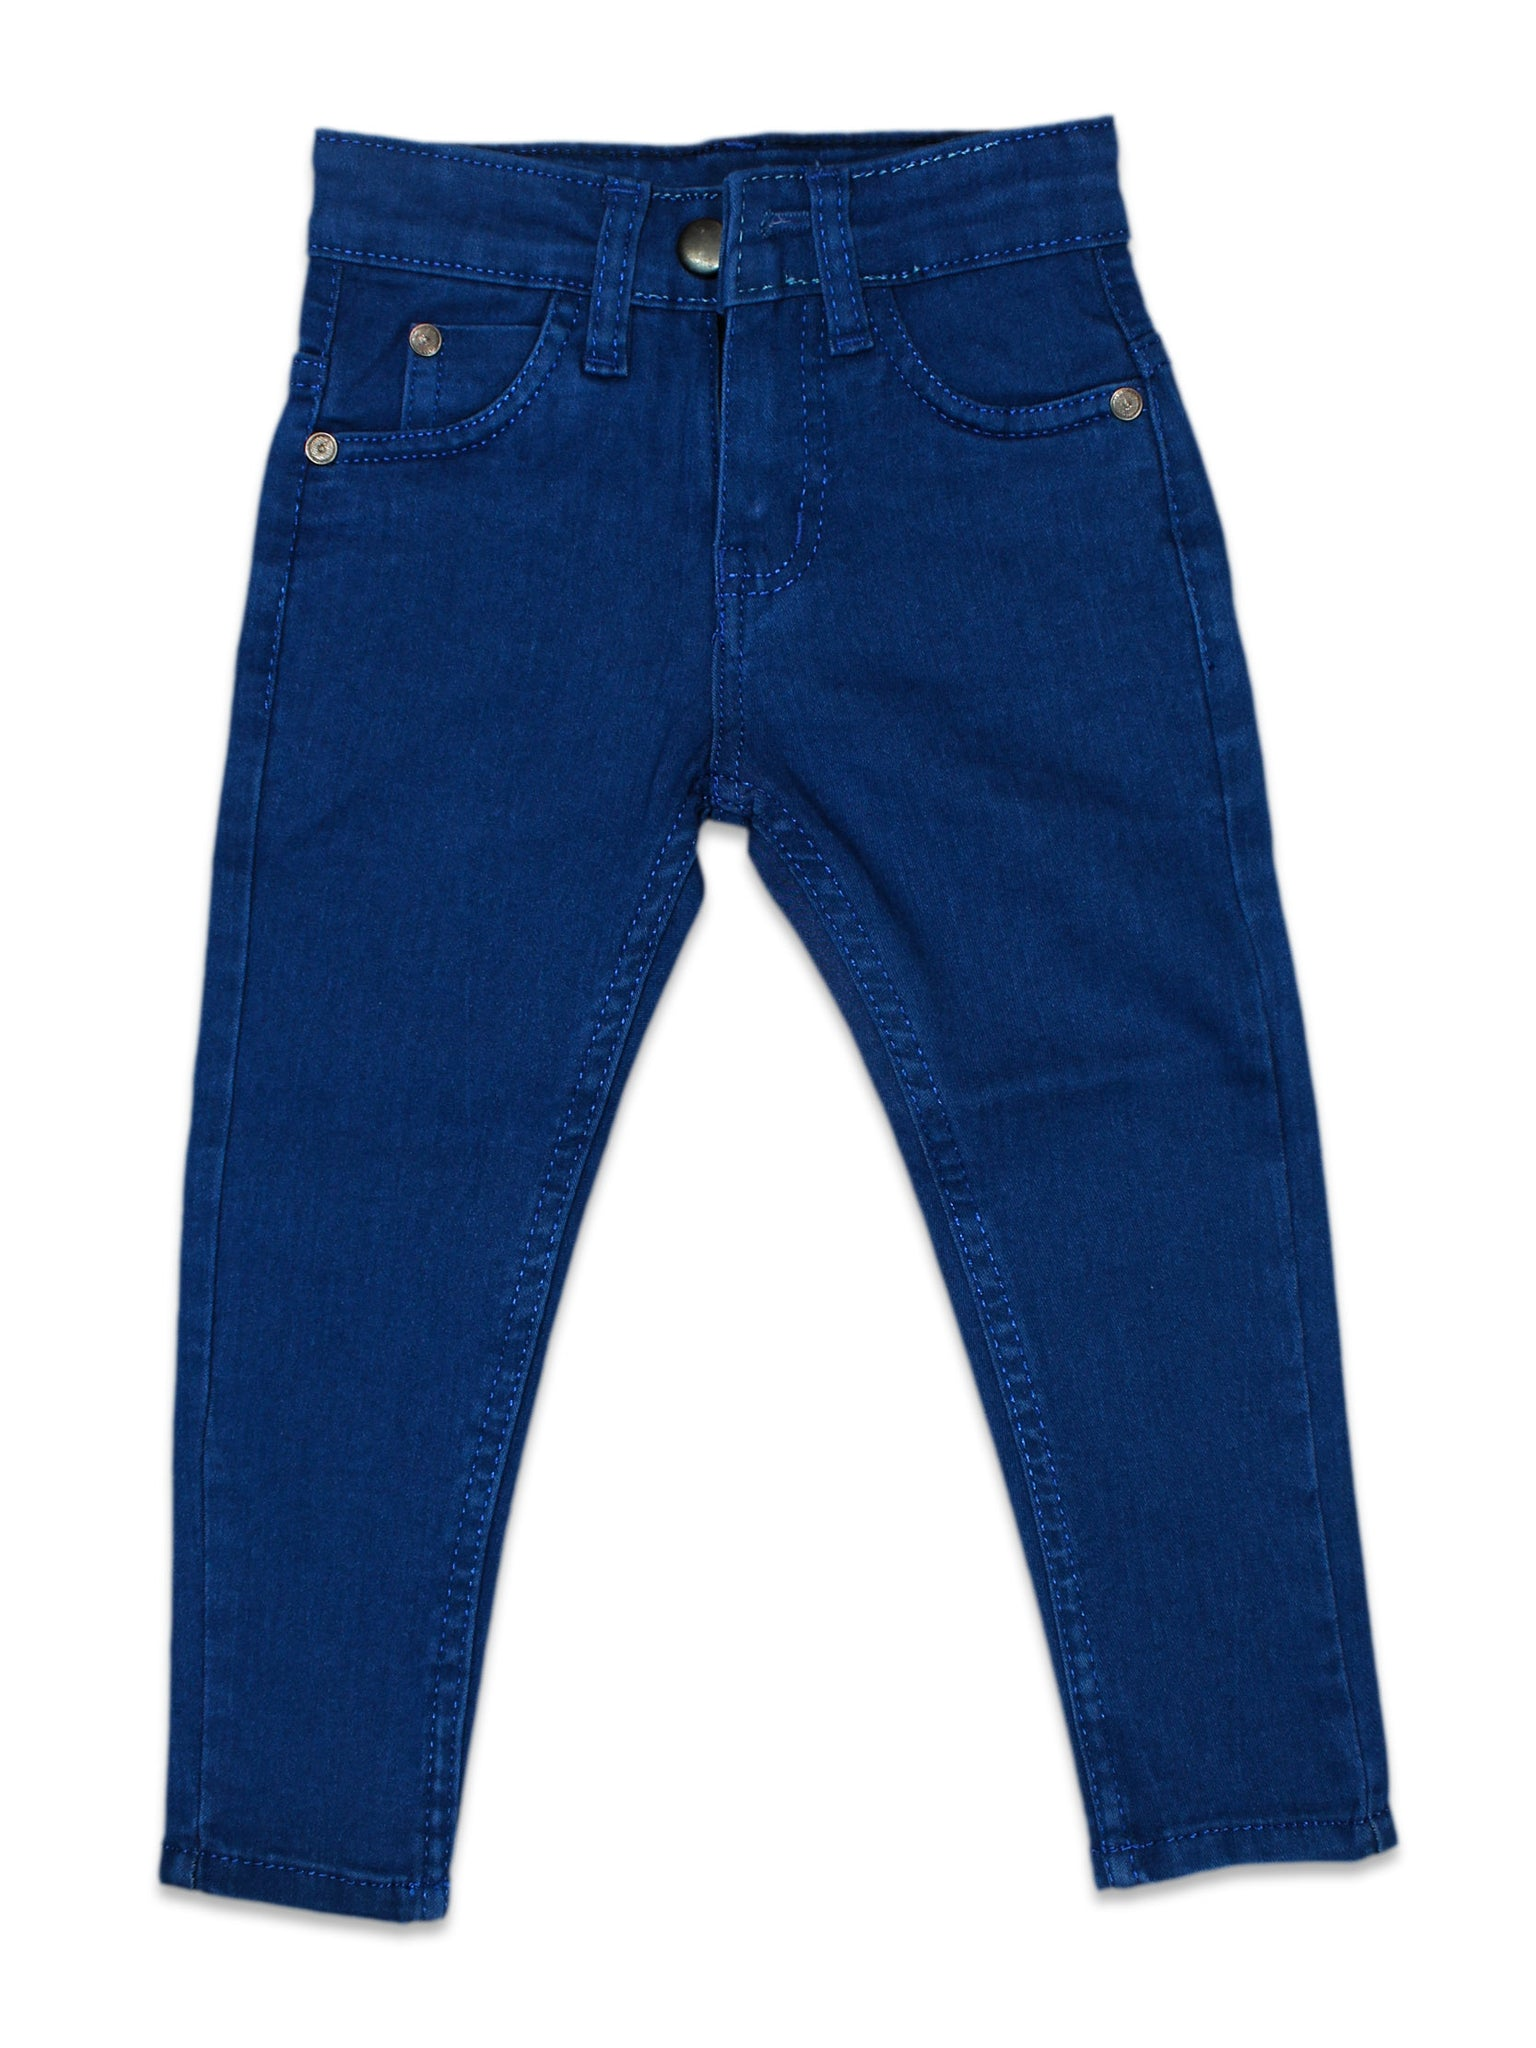 Stretchable Jeans For Girls 3Yrs - 11Yrs Royal Blue